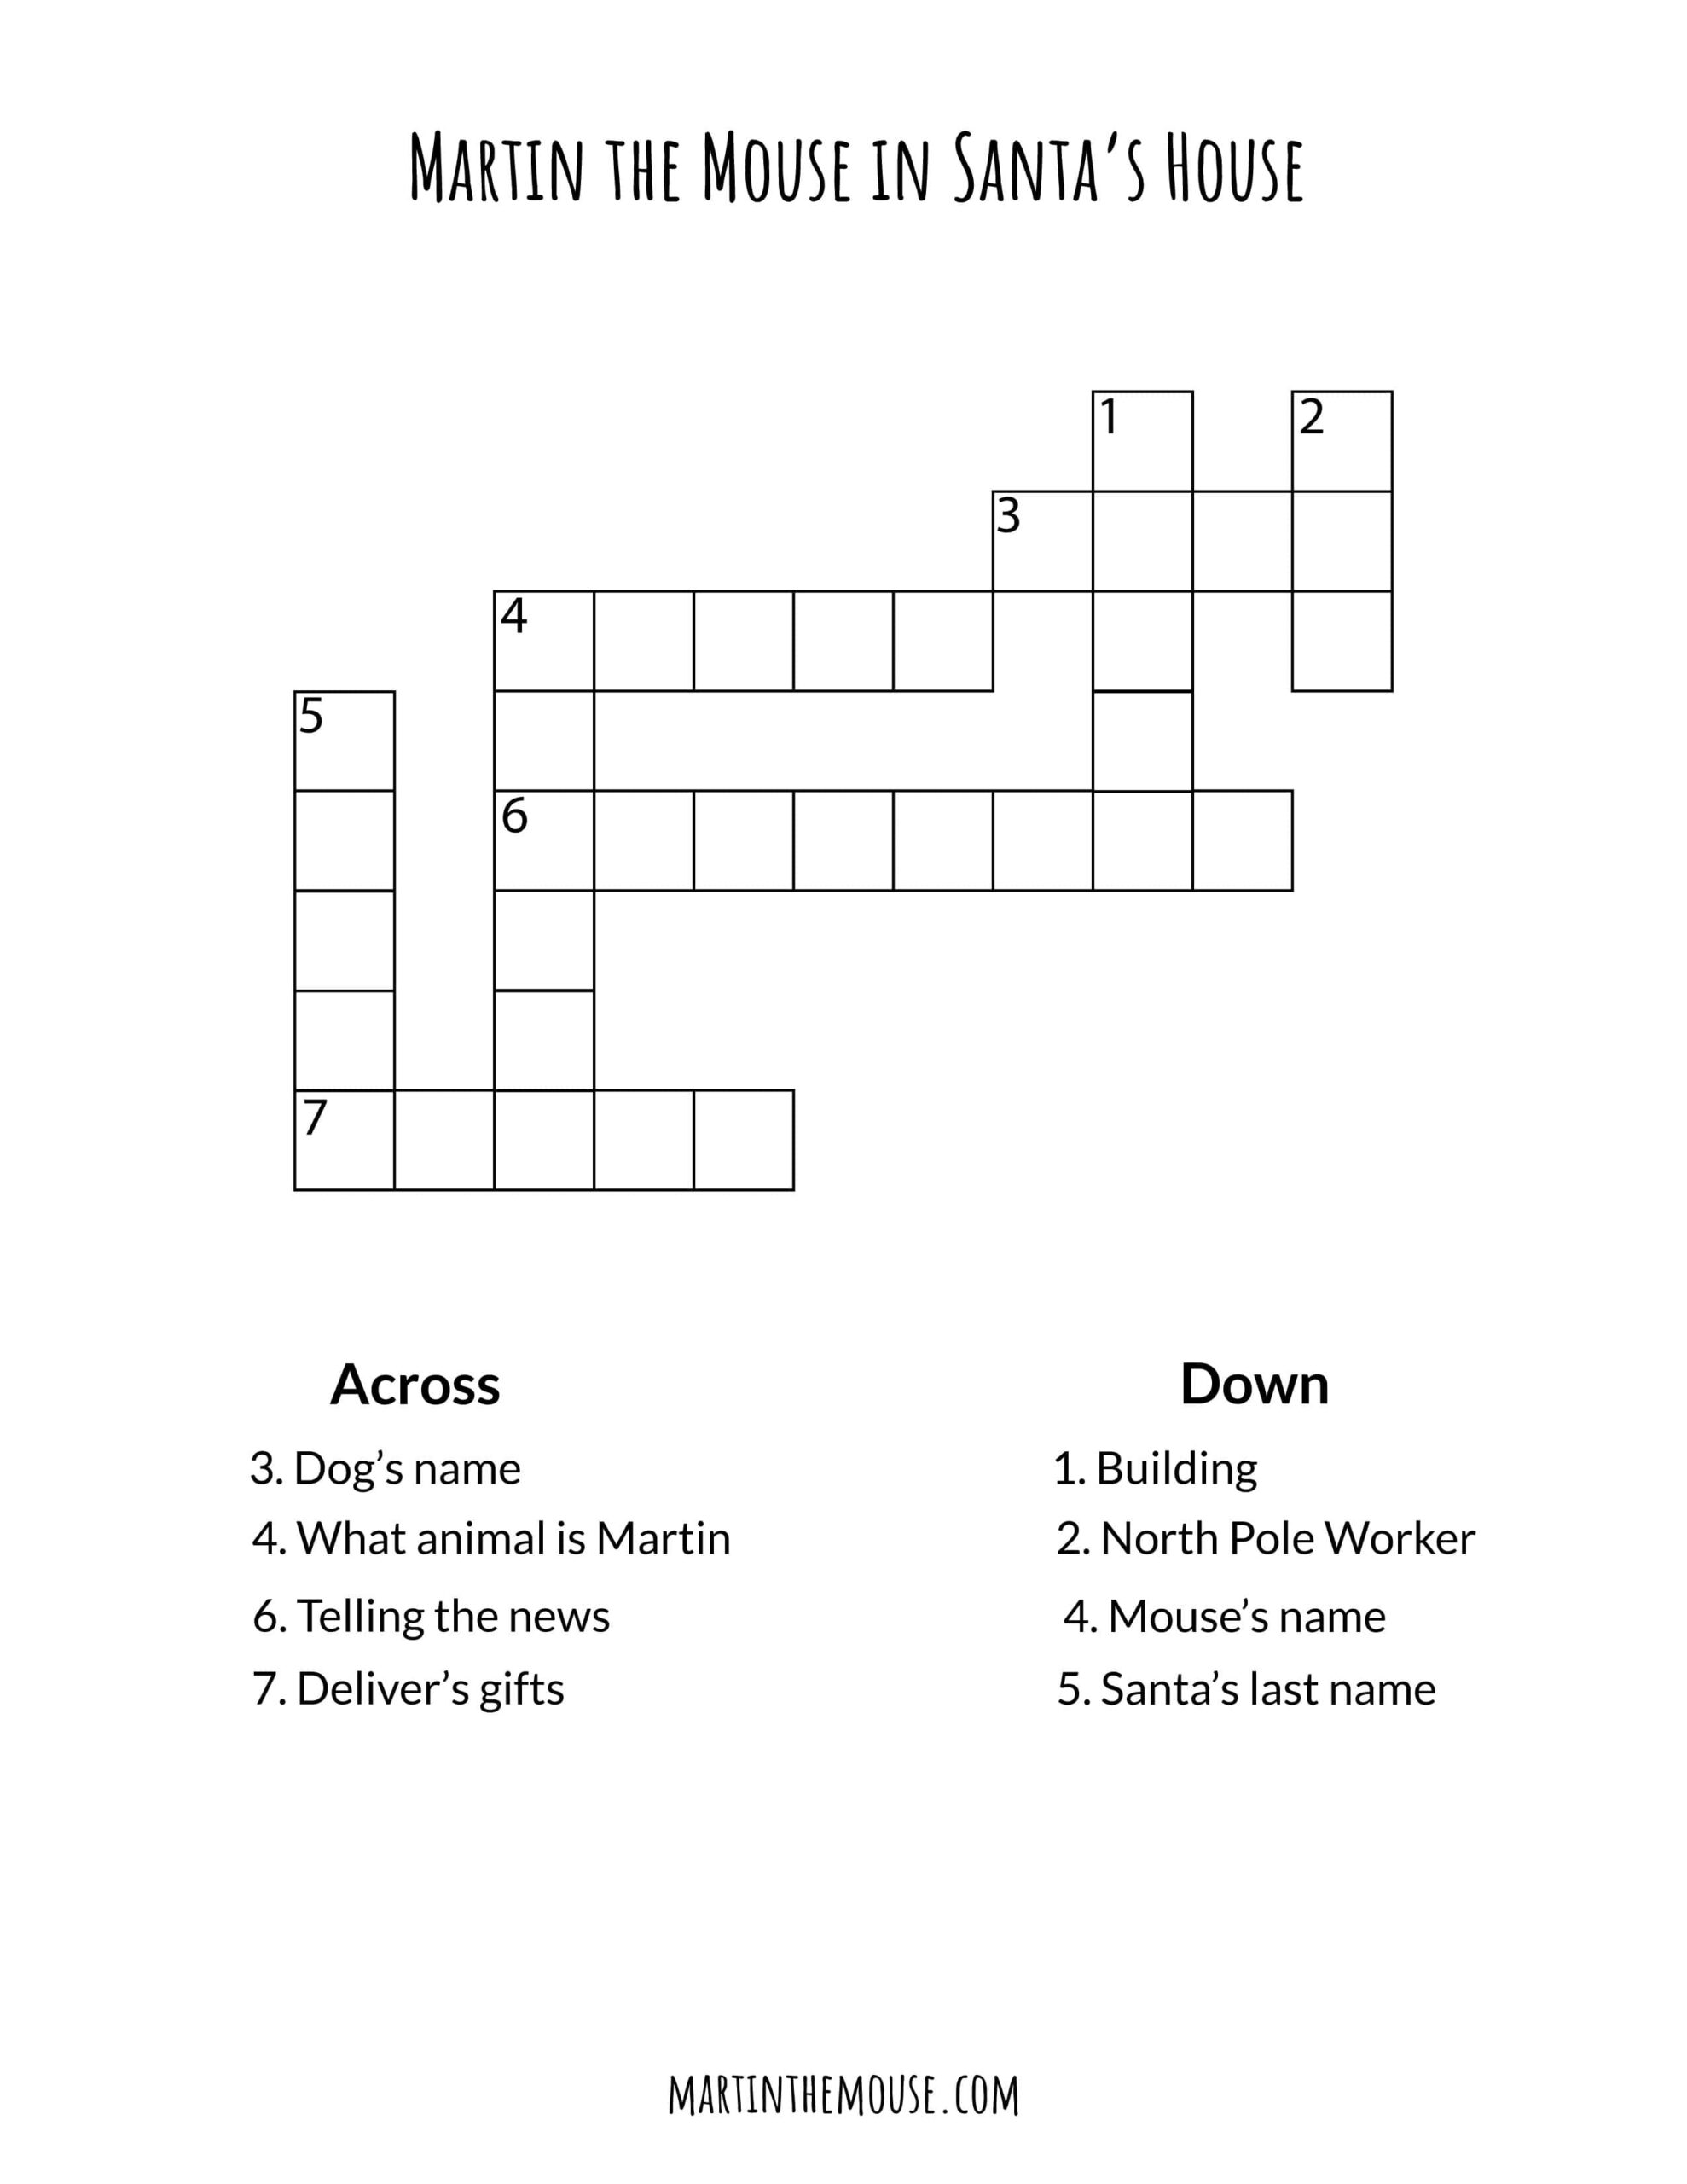 Martin the Mouse in Santa's House Crossword Puzzle